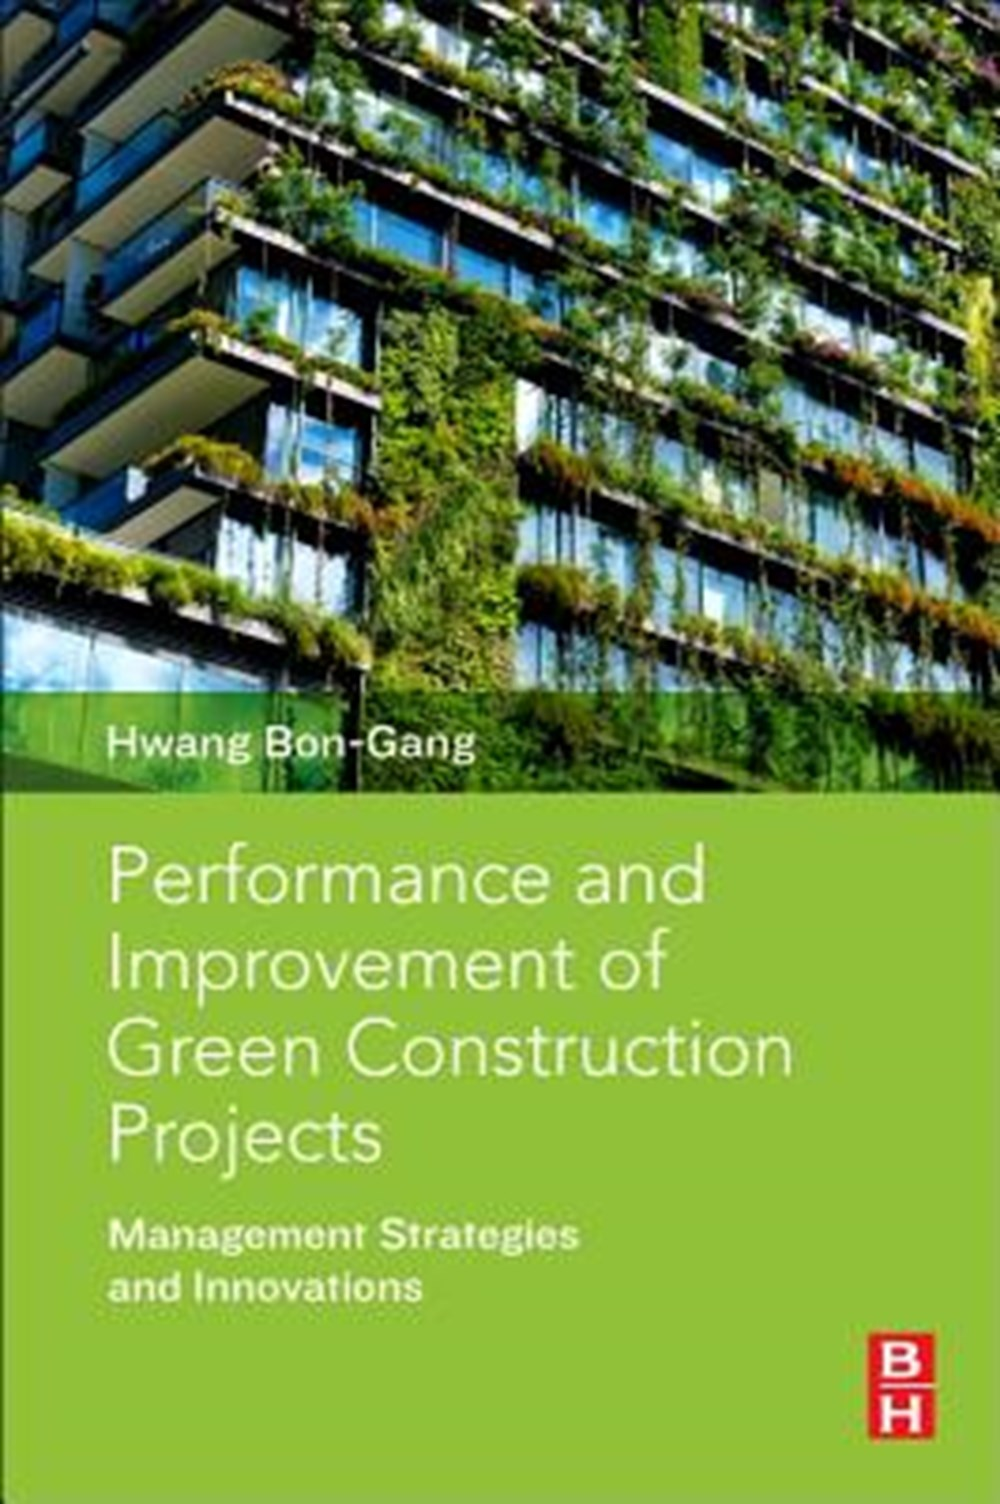 Performance and Improvement of Green Construction Projects Management Strategies and Innovations